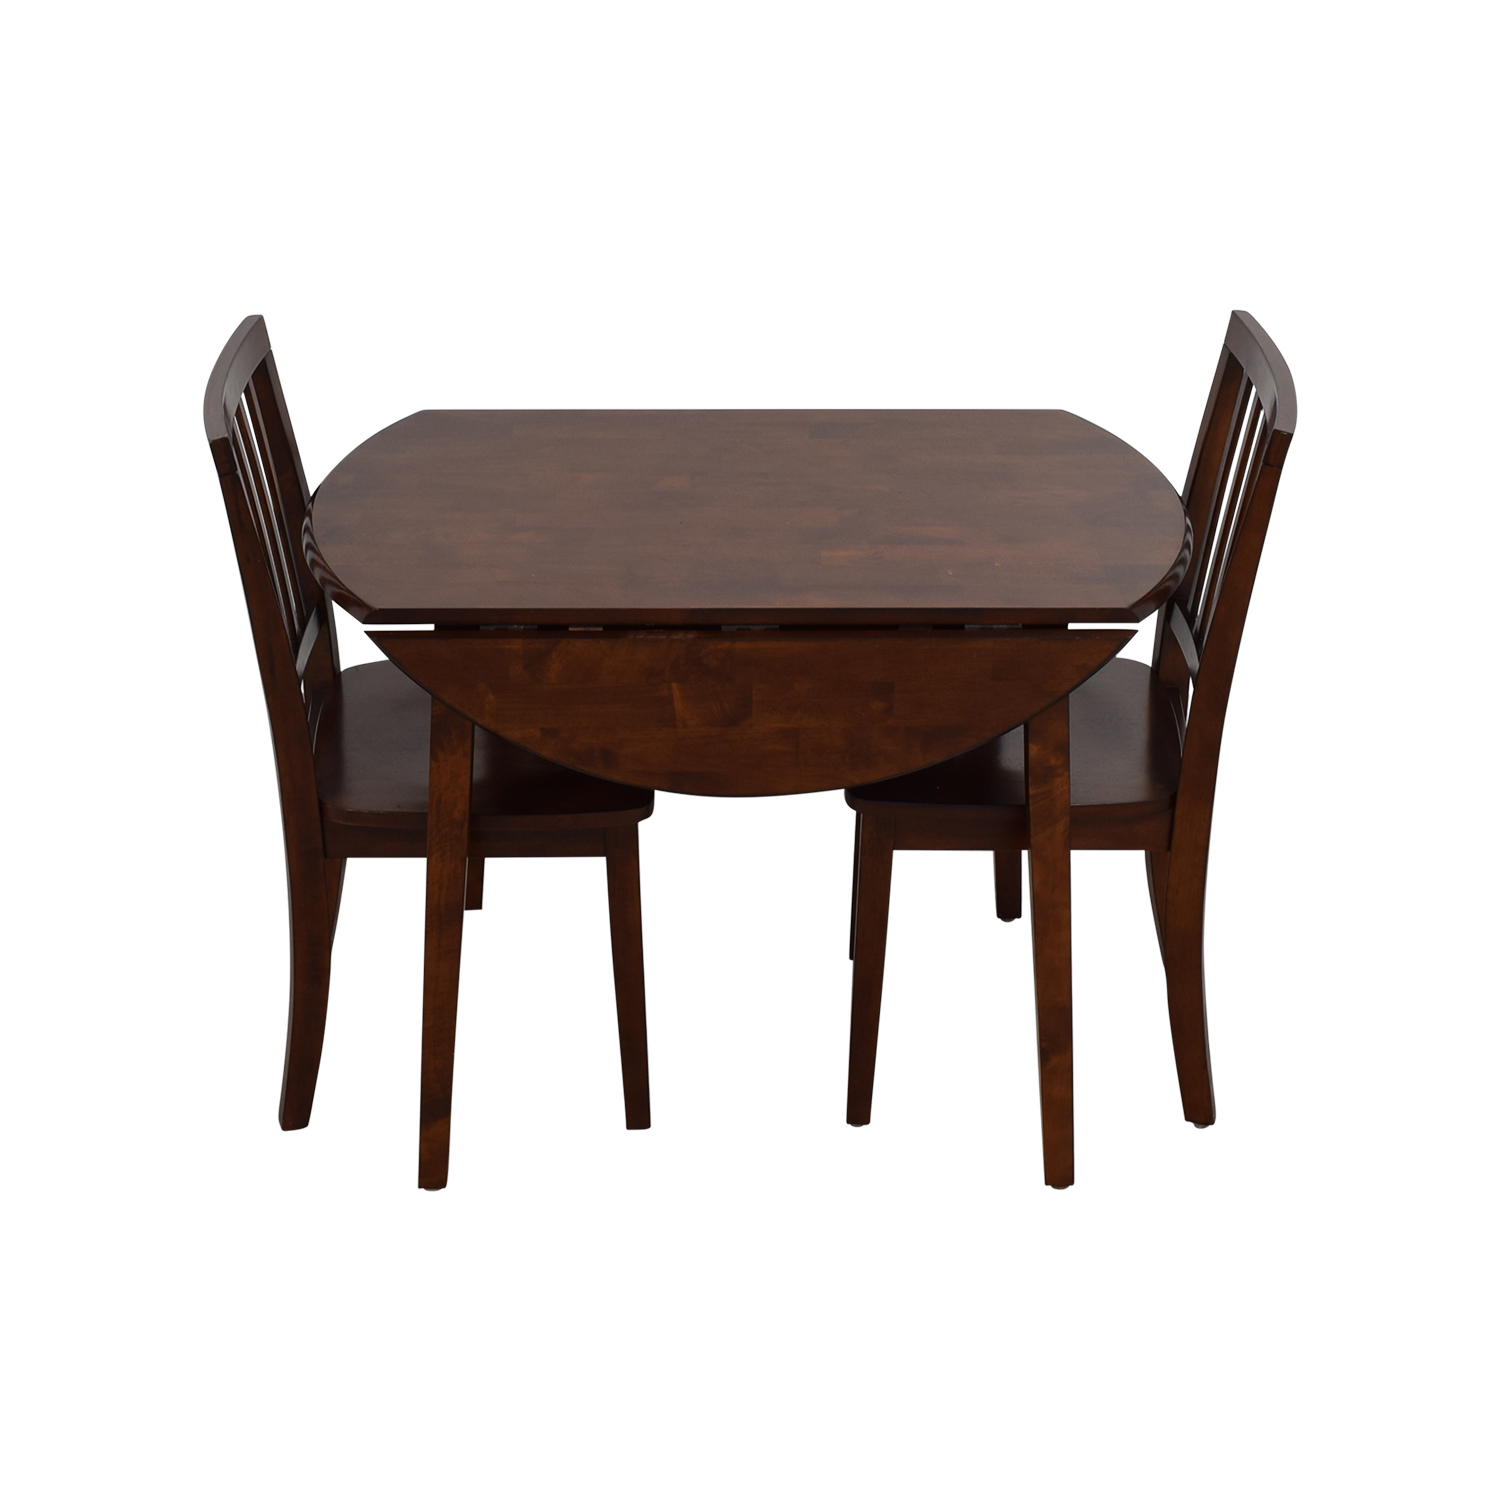 Breakfast Table and Chairs on sale